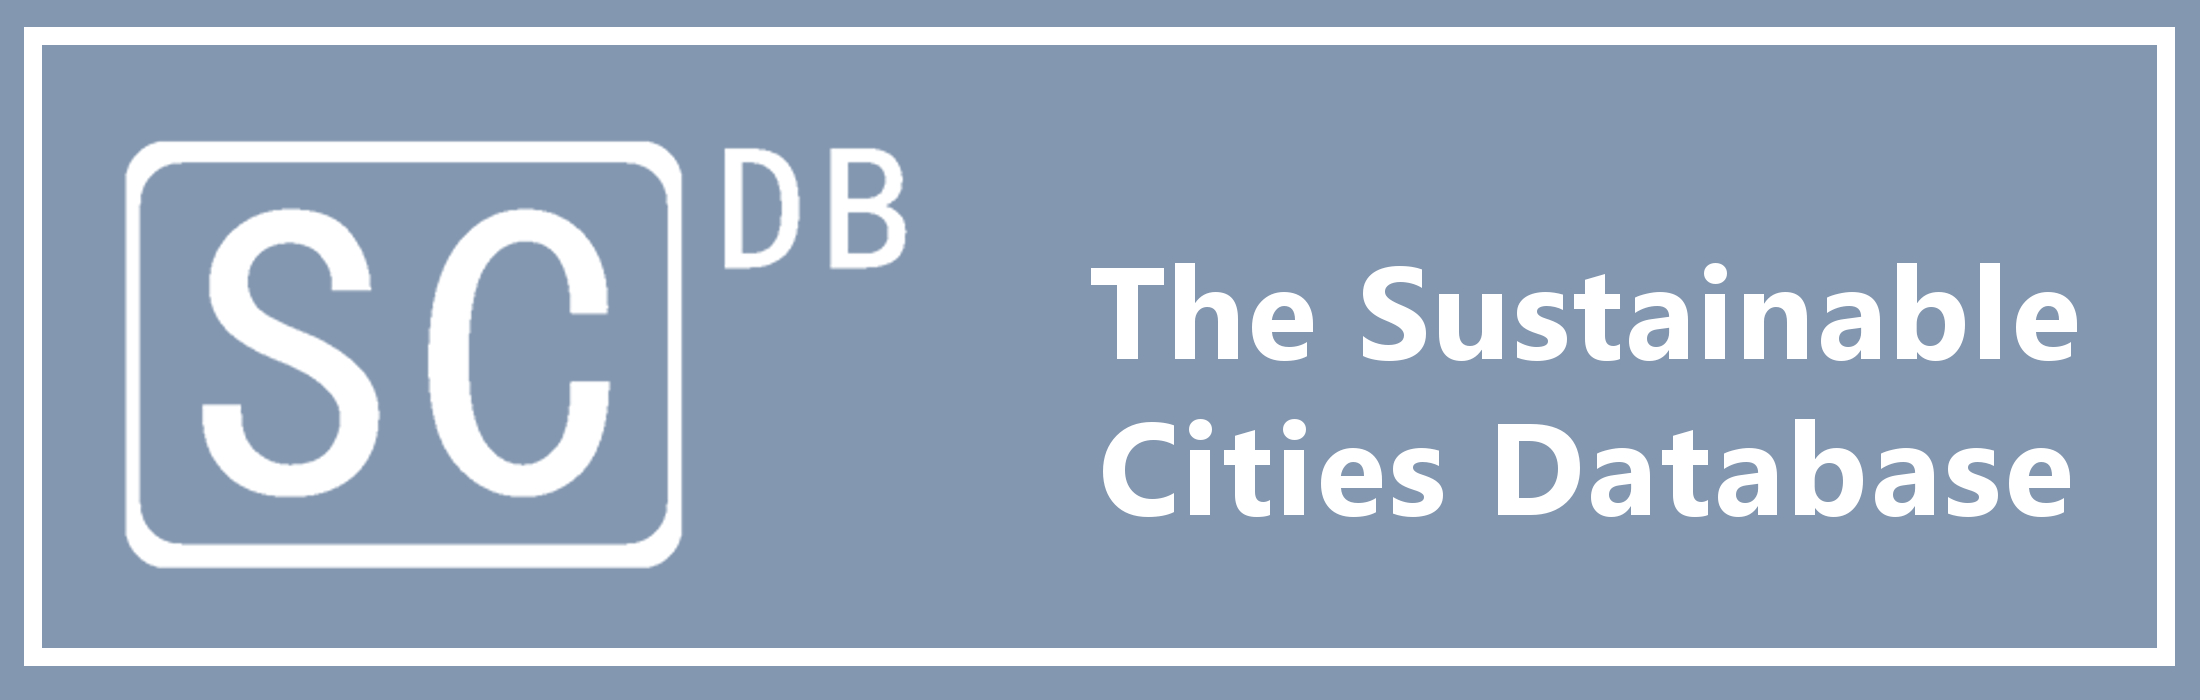 The Sustainable Cities Database